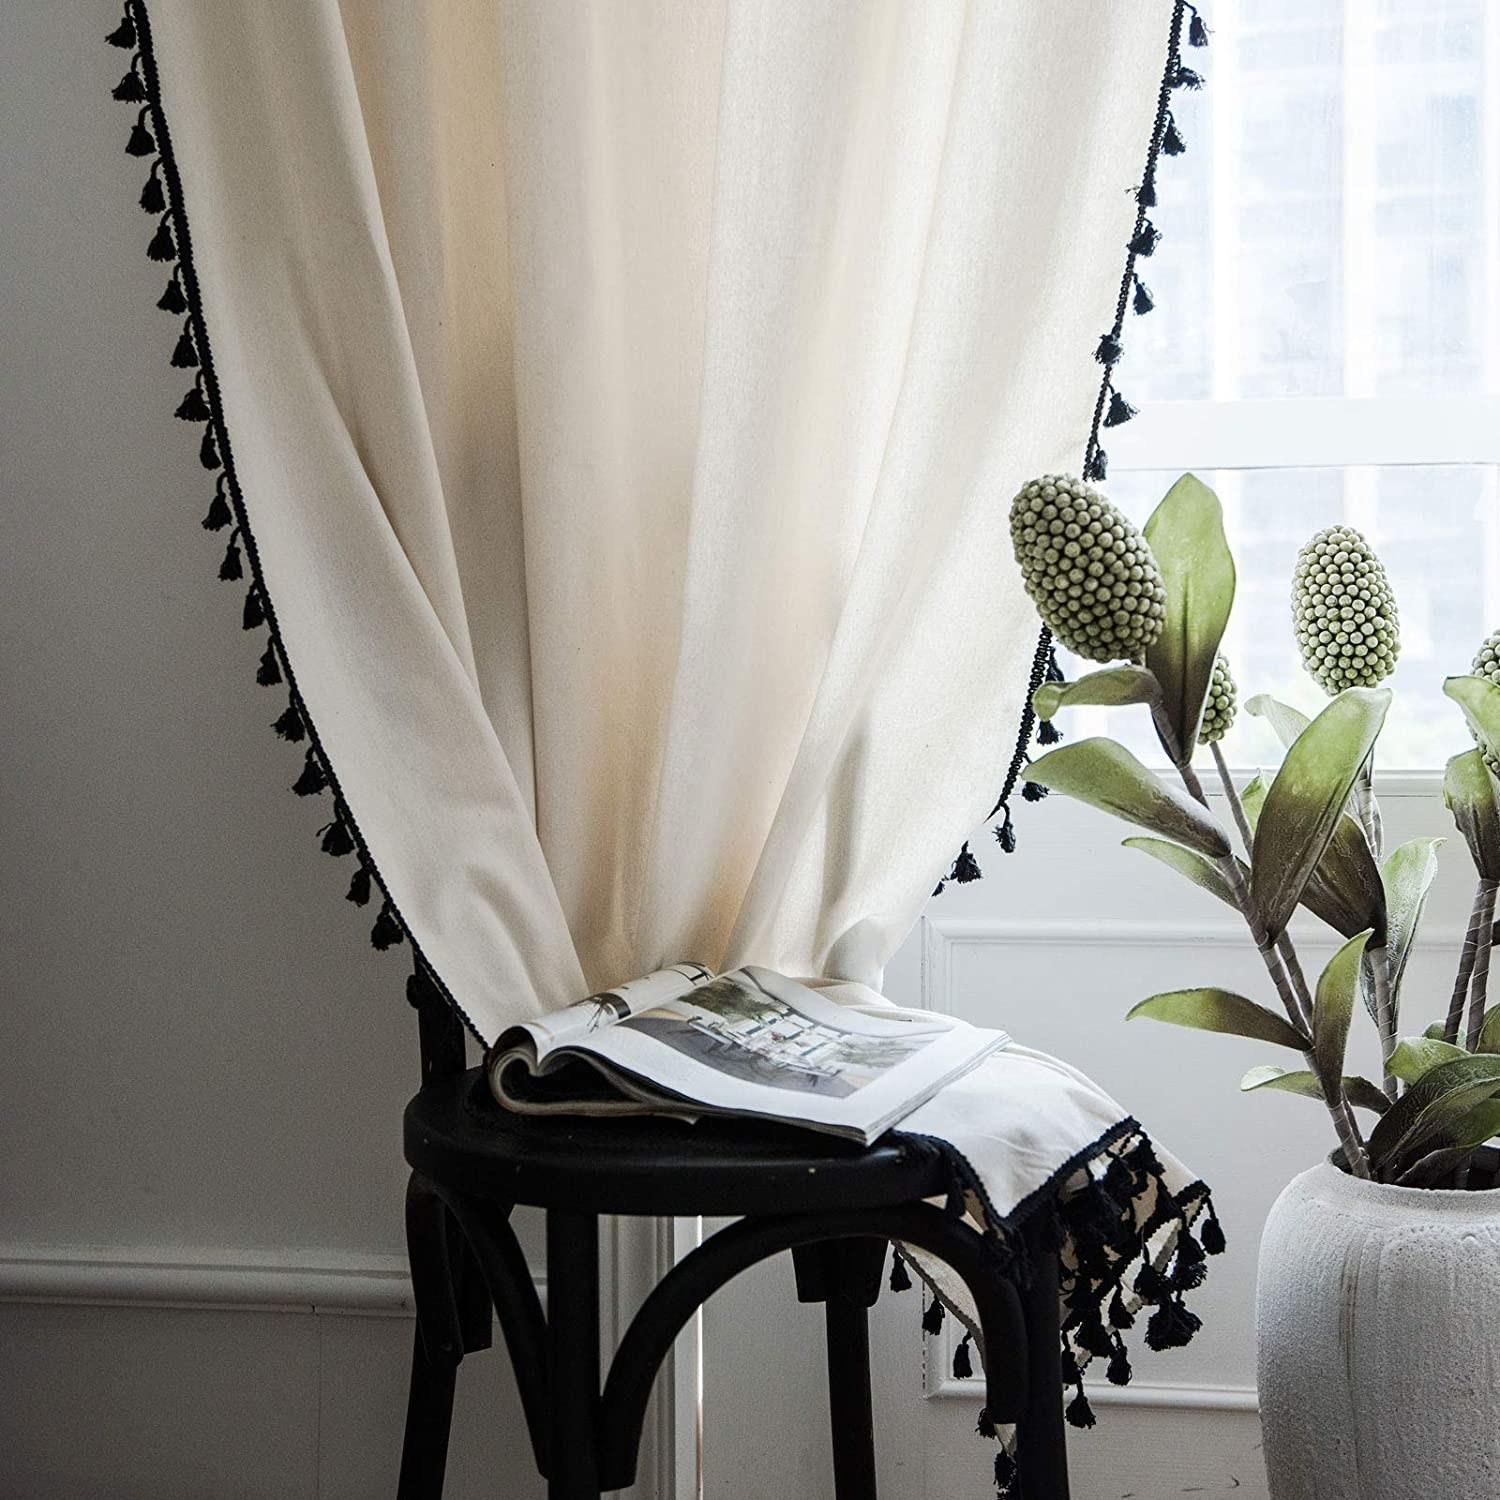 Cream curtain with black tassels on the edges